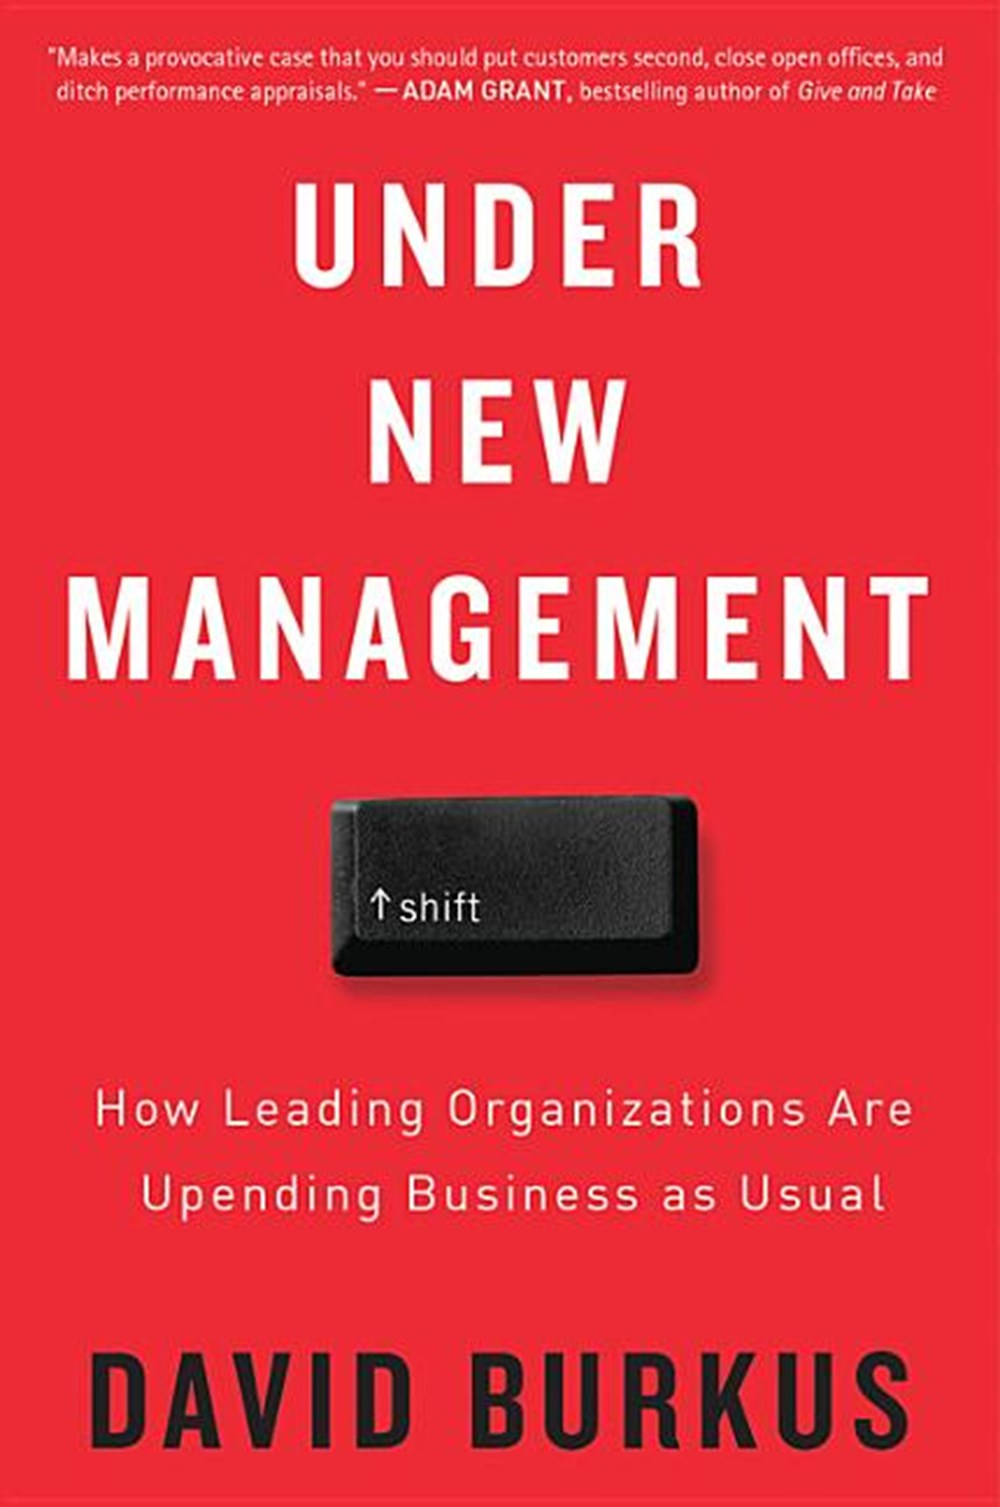 Under New Management How Leading Organizations Are Upending Business as Usual